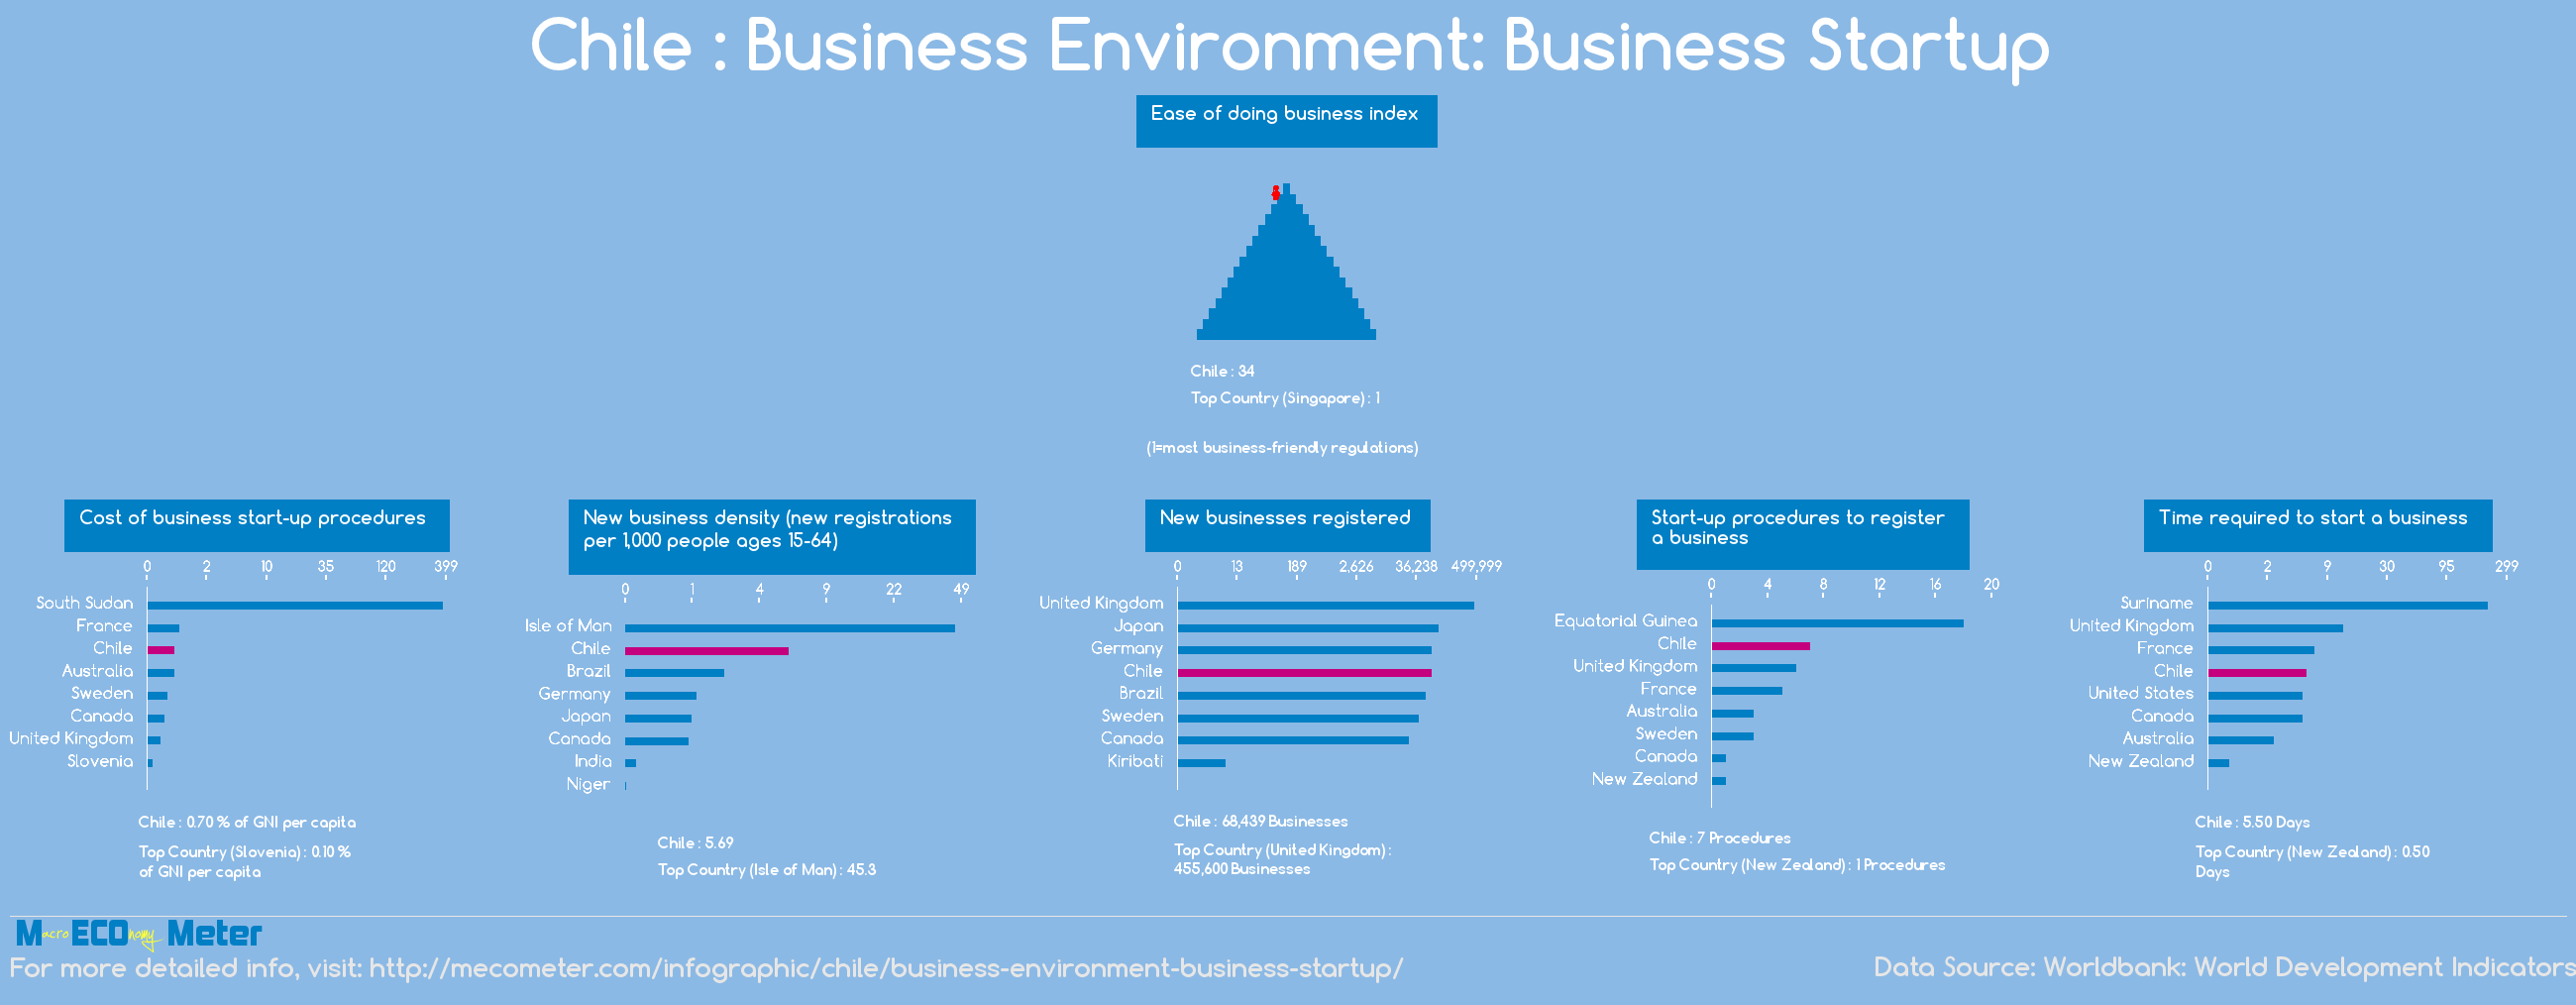 Chile : Business Environment: Business Startup